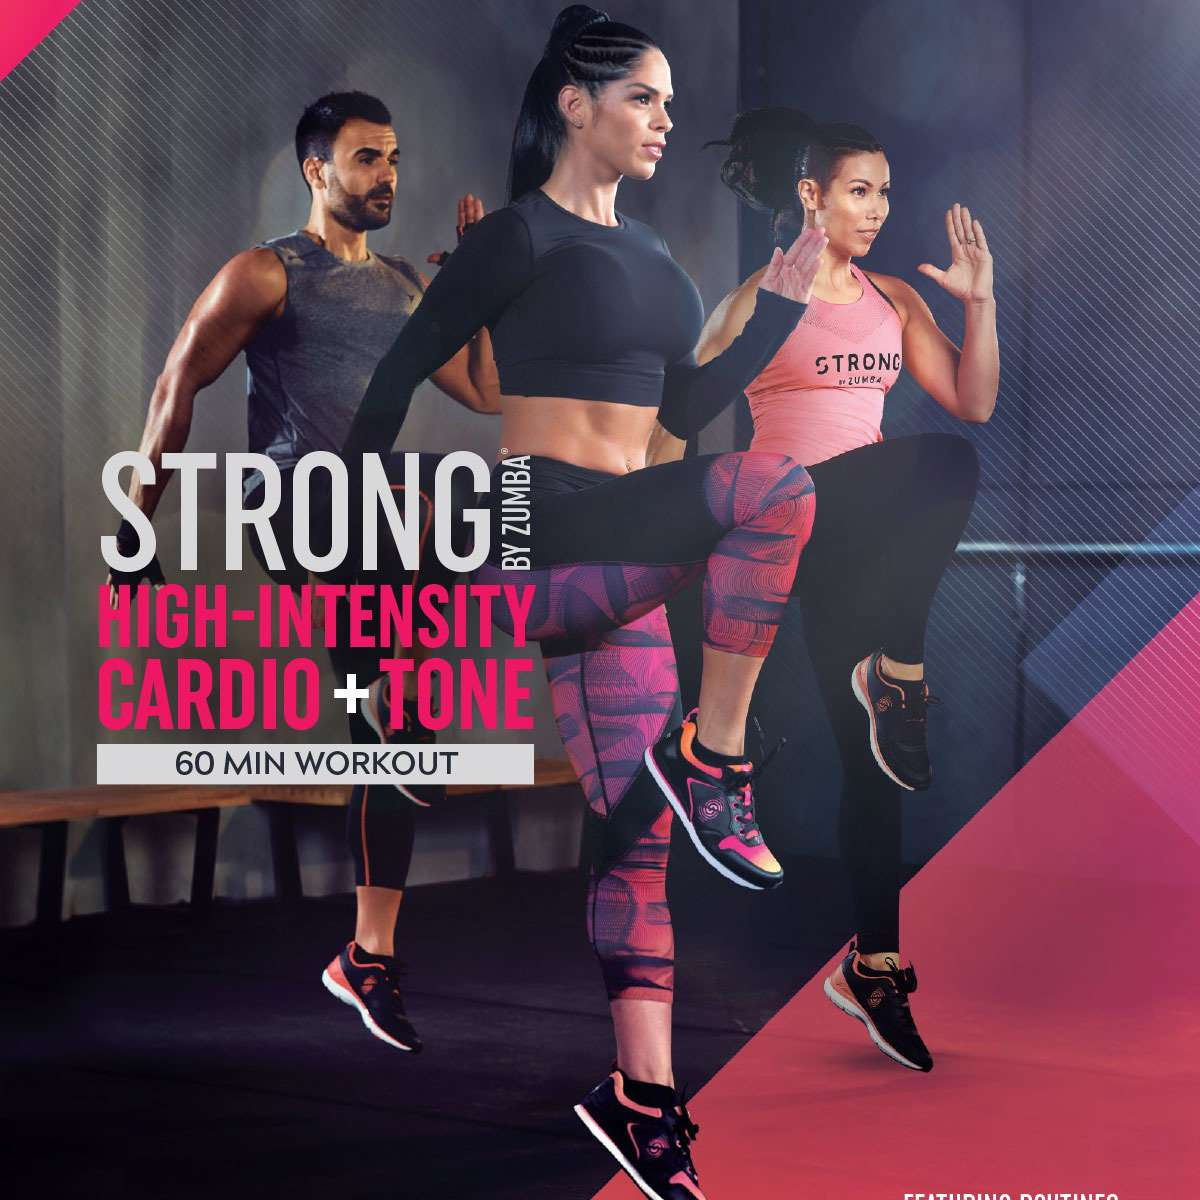 Strong by Zumba High-Intensity Cardio + Tone (1 DVD)